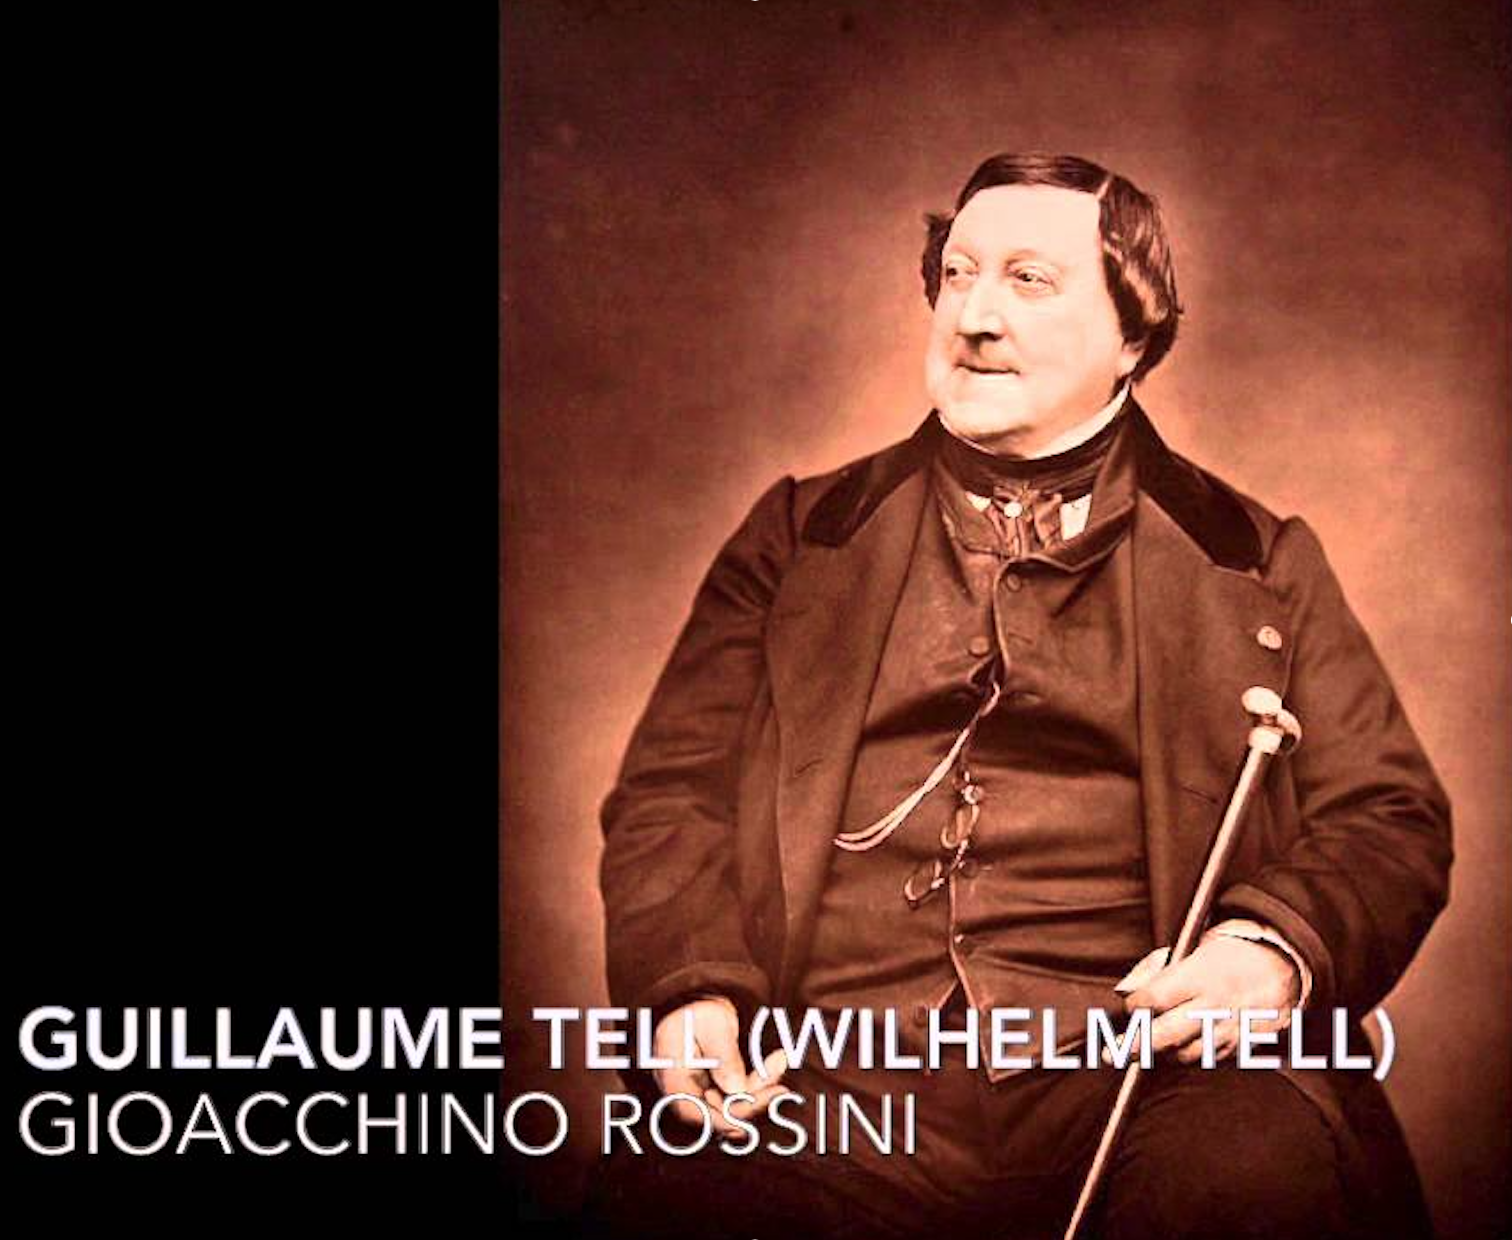 G. Rossini's GUILLAUME TELL (Guillaume Tell)